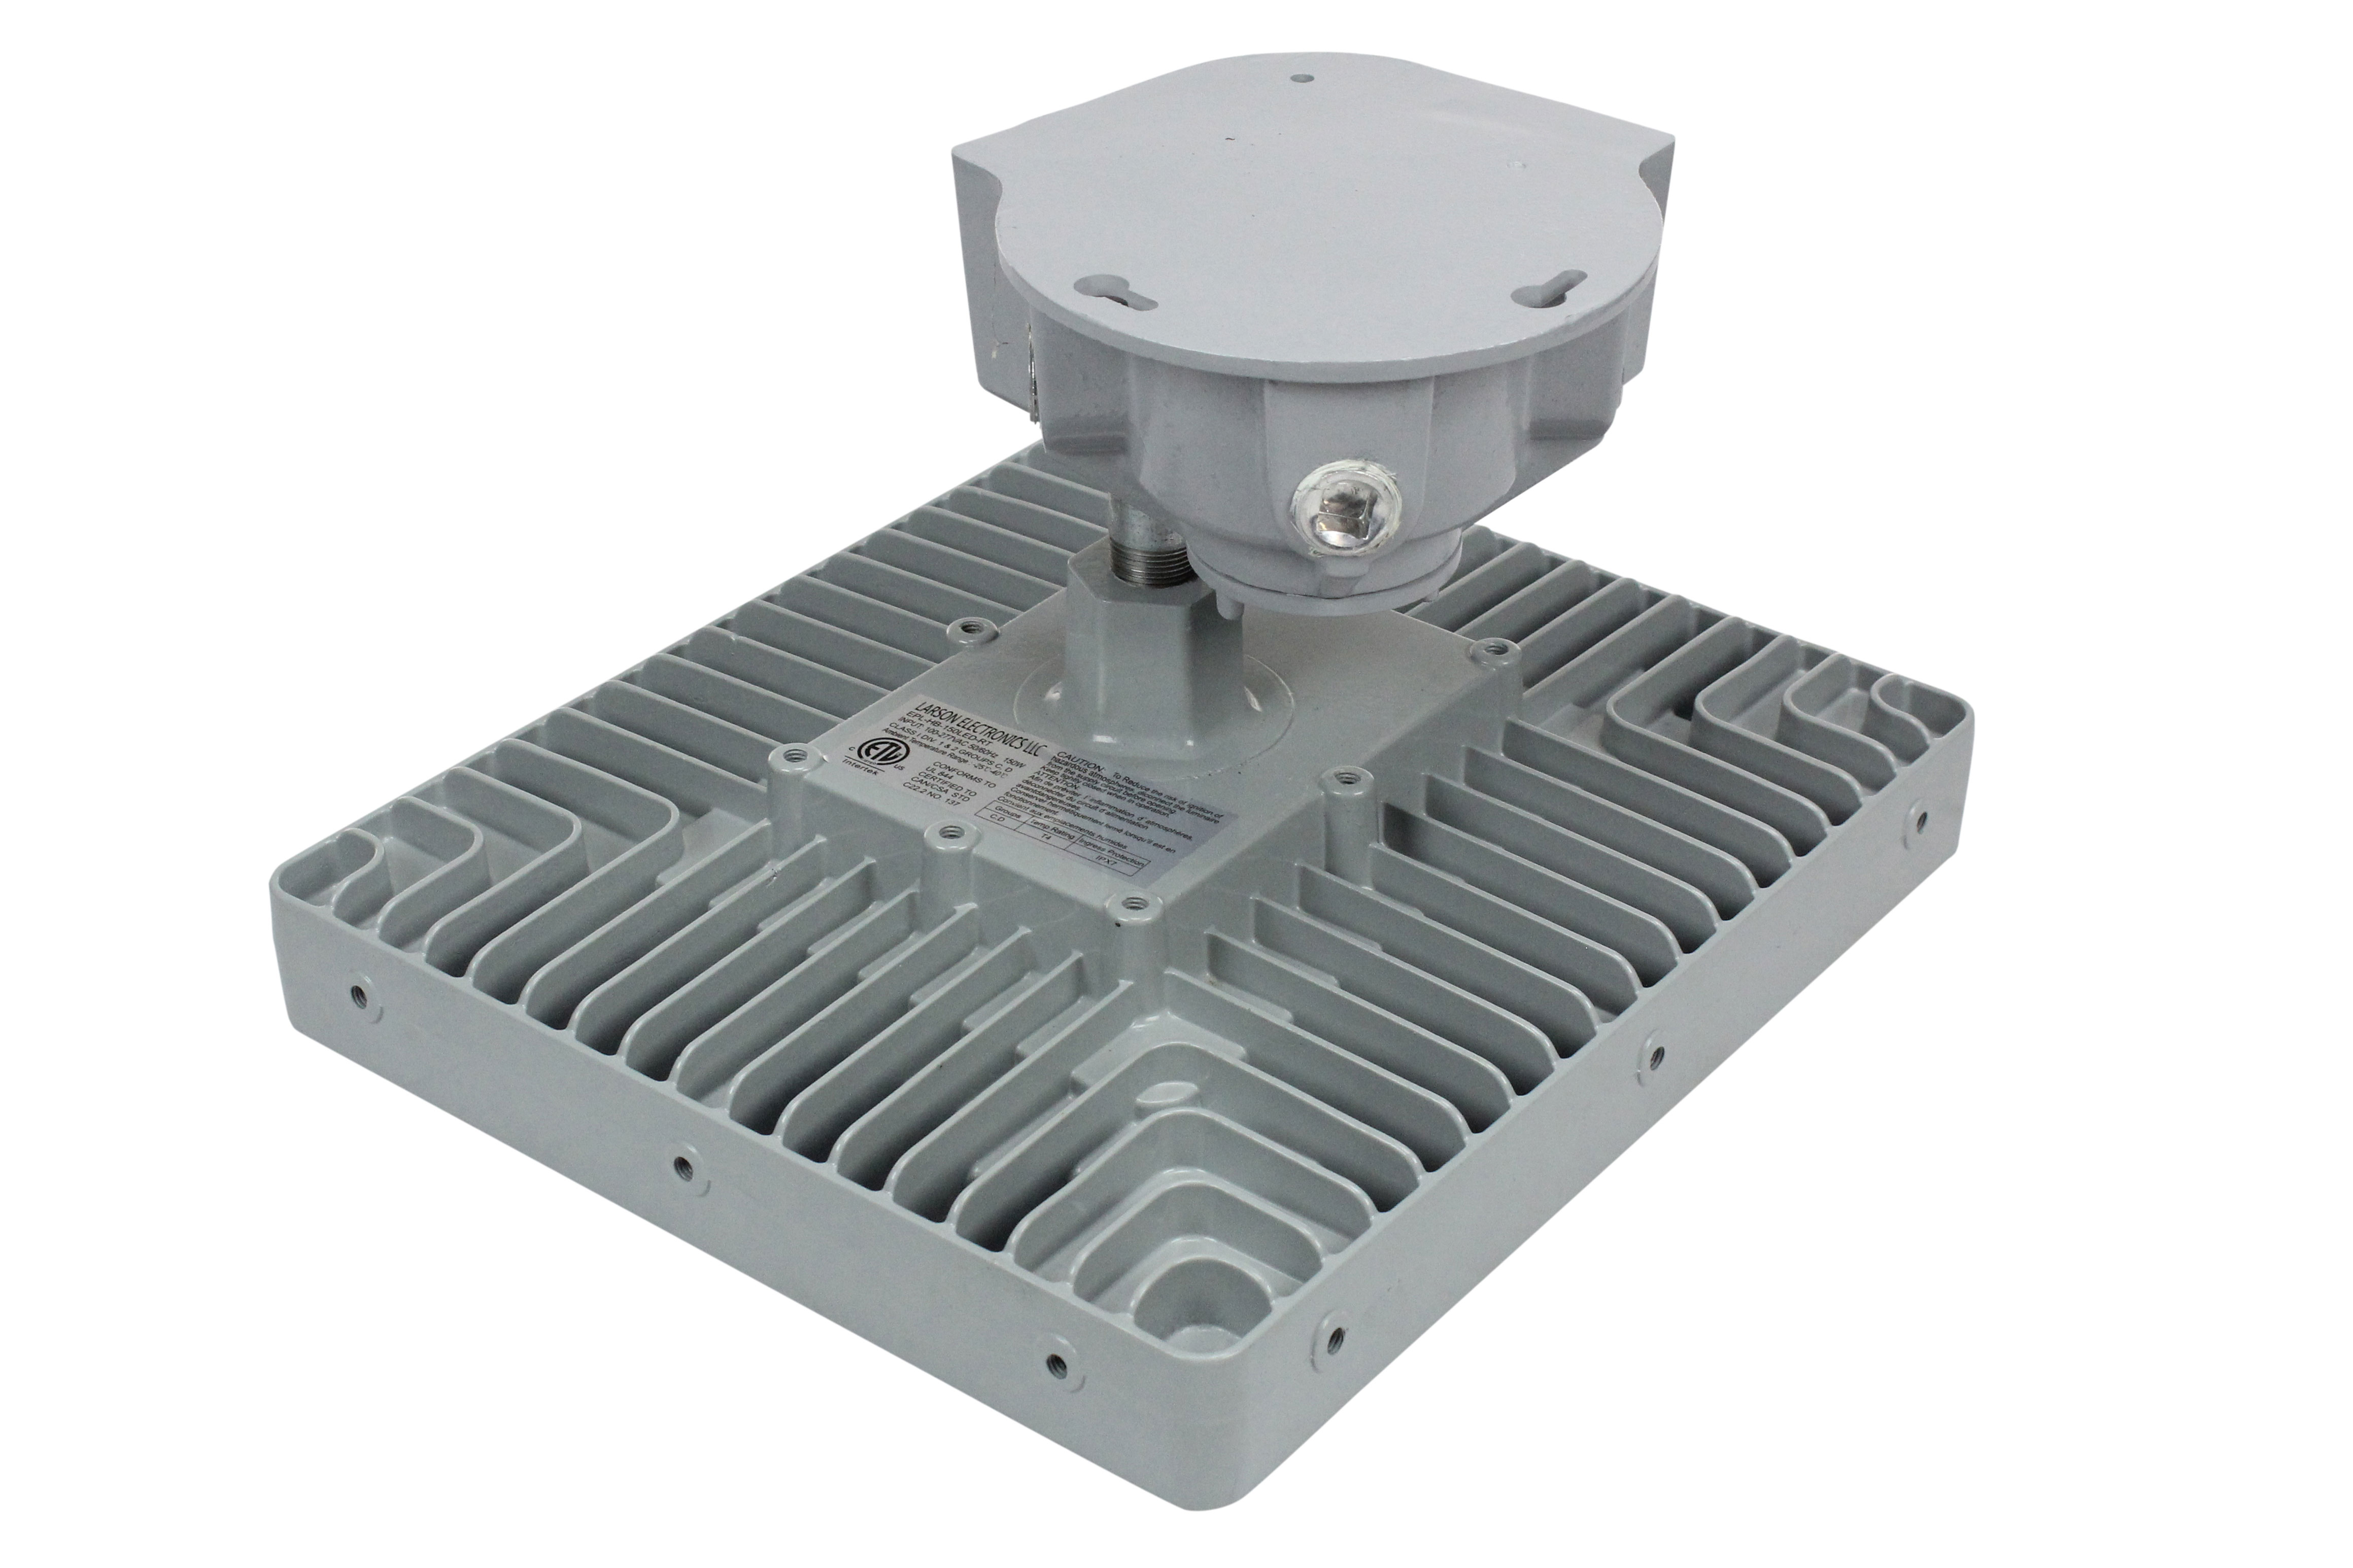 100 watt high bay explosion proof led light fixture with ceiling